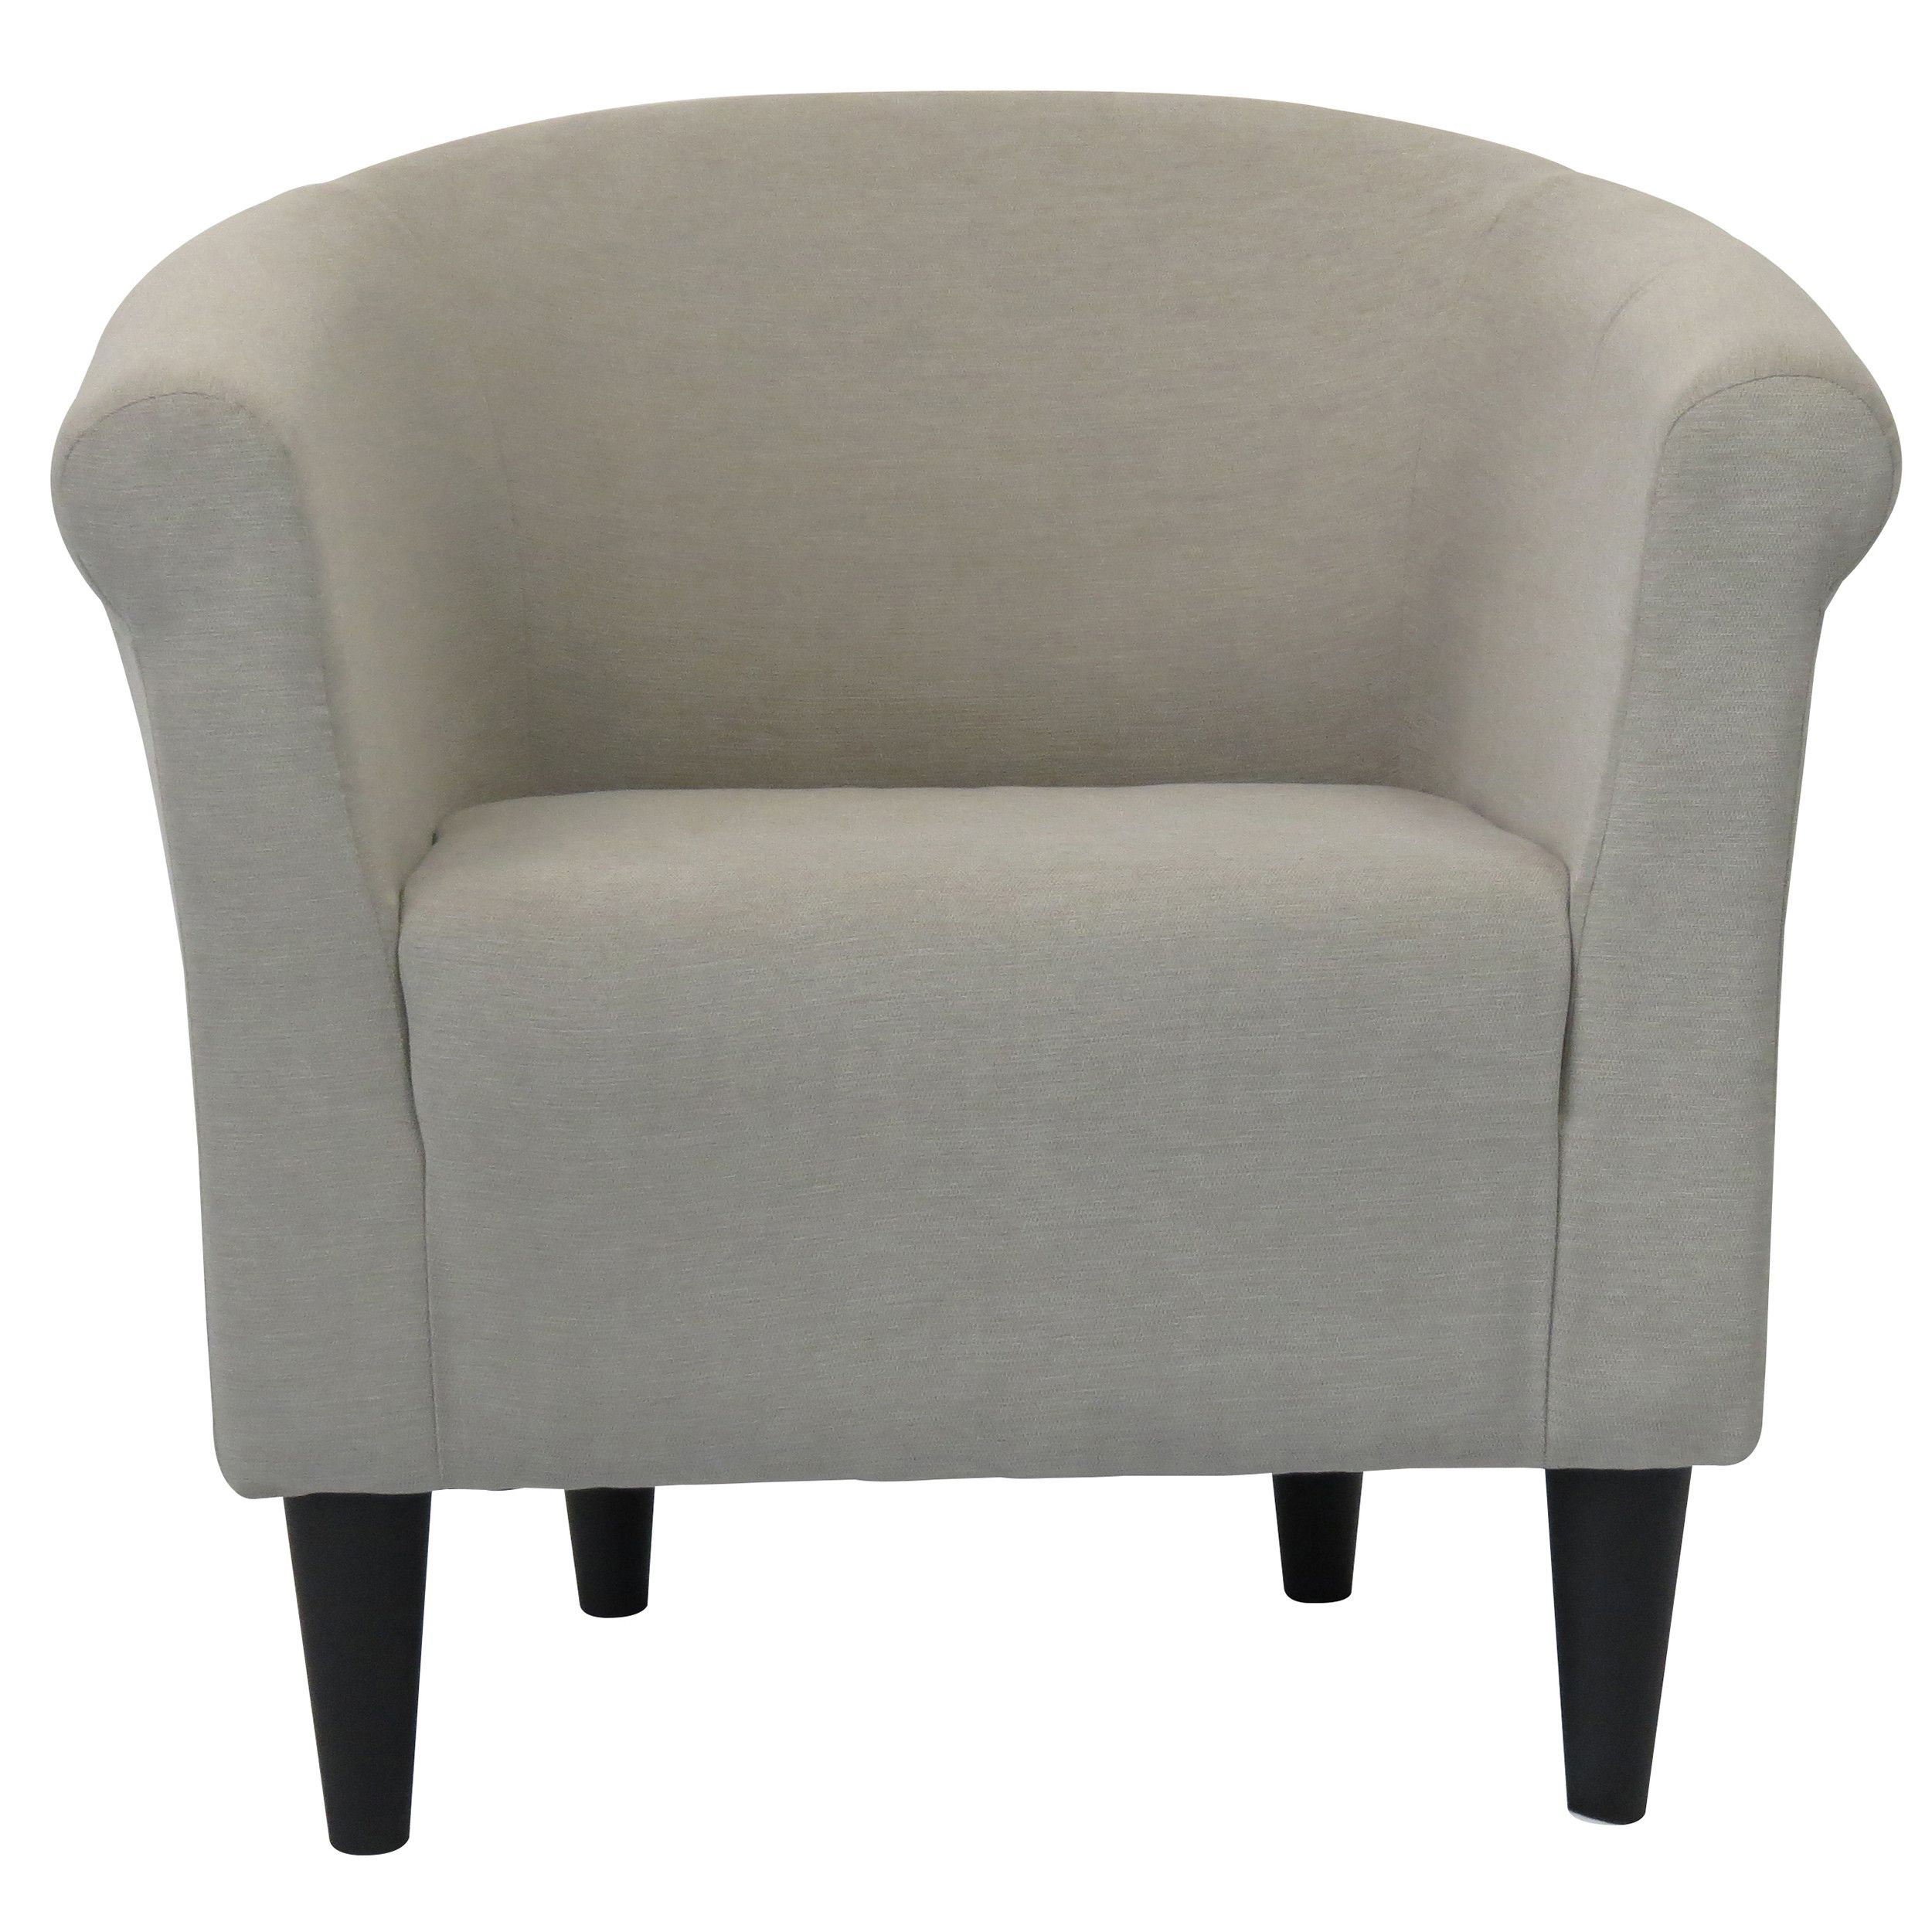 Shop Wayfair for Accent Chairs to match every style and bud